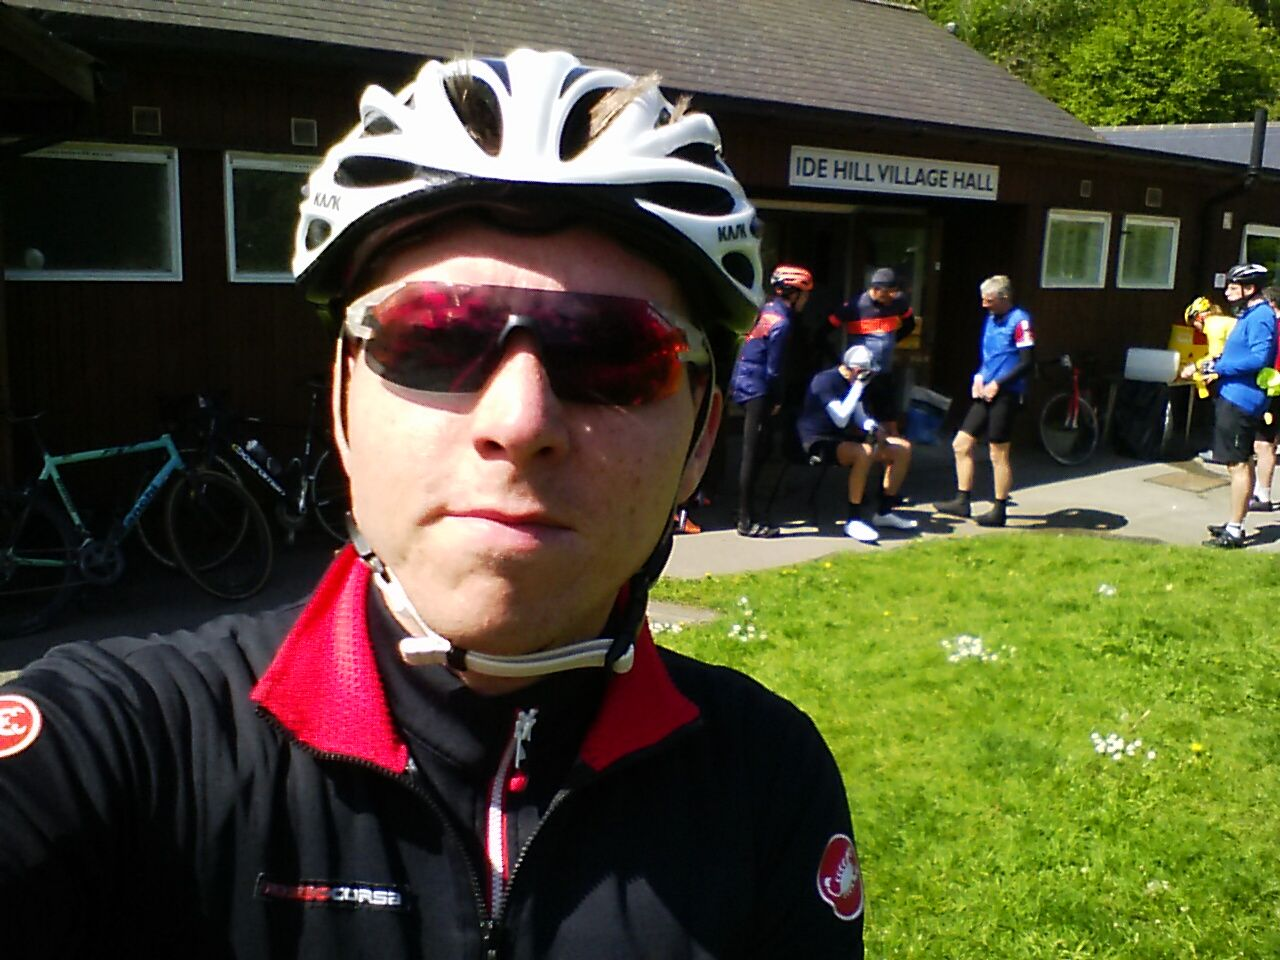 Calum in cycling wear outside Ide Hill village hall